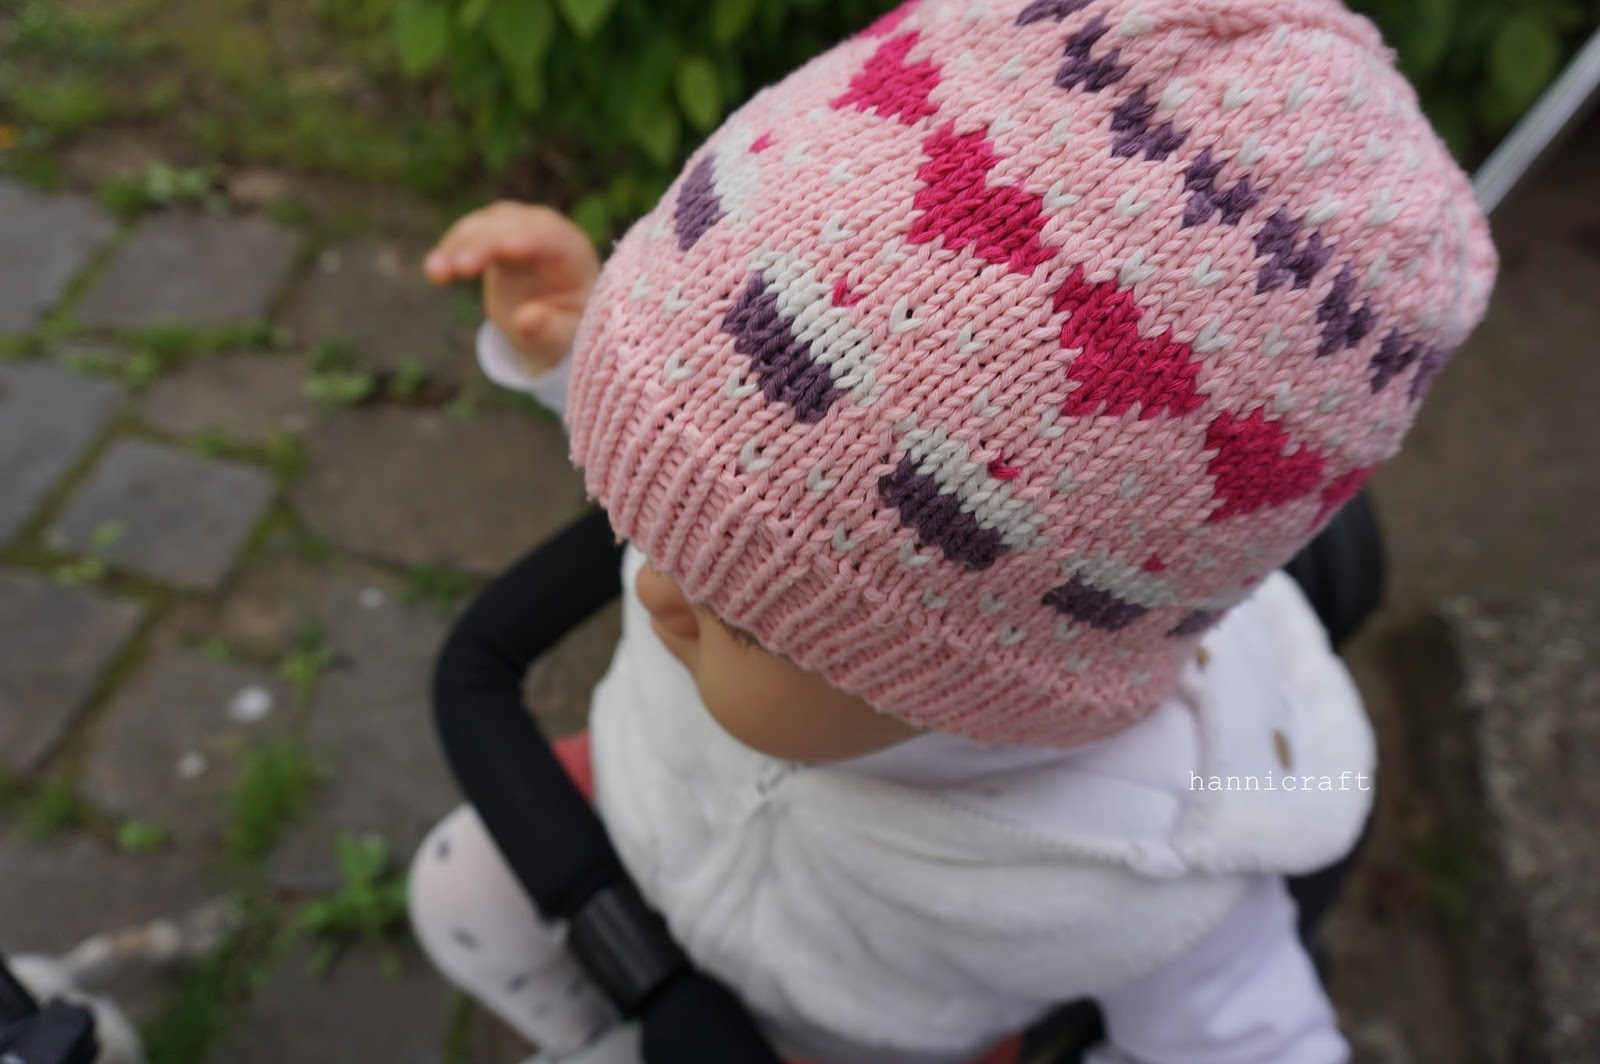 hannicraft: Giveaway: Hearts and Cupcakes Hat Pattern